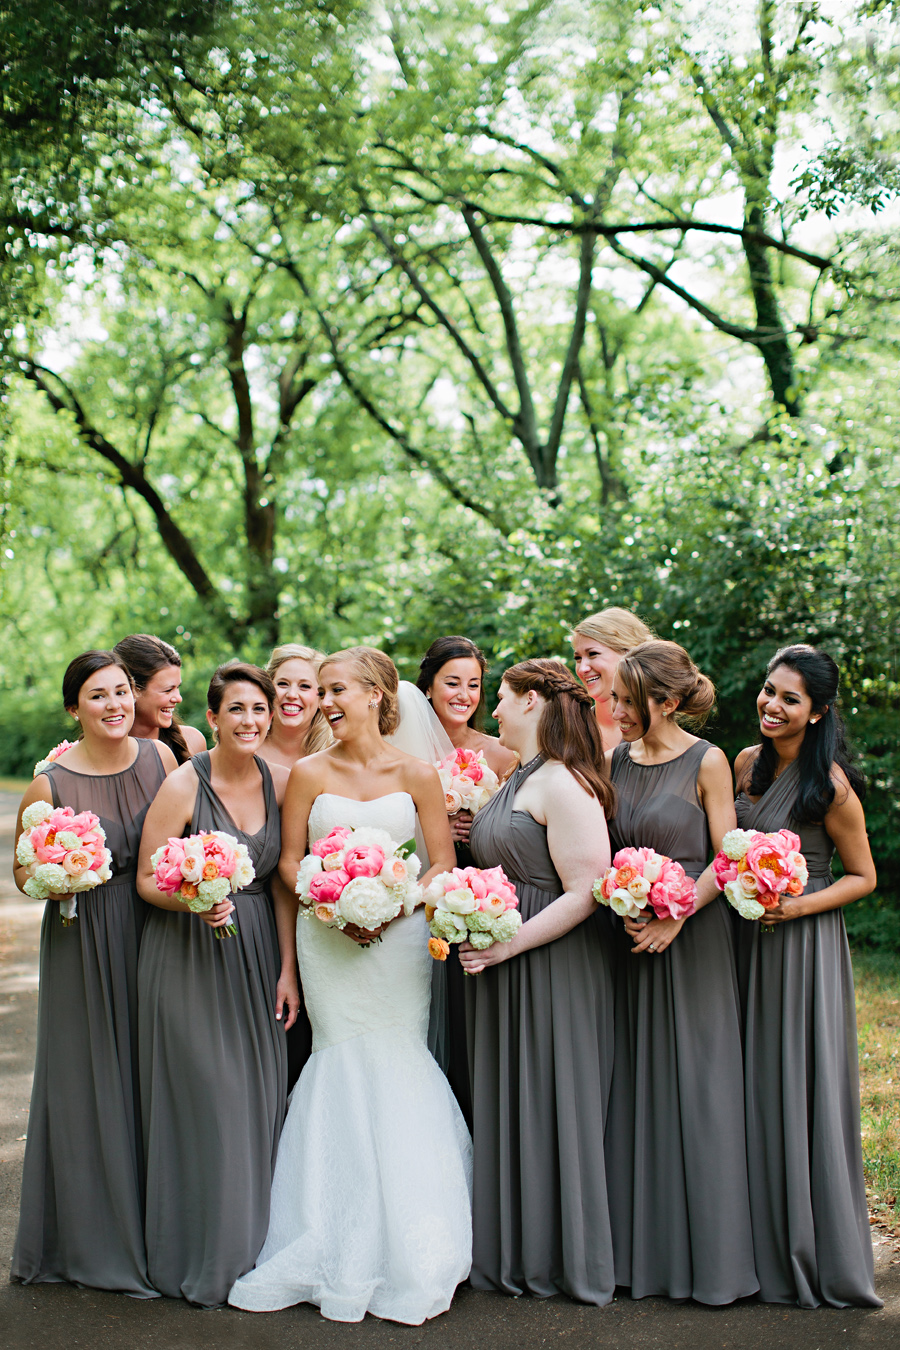 Pewter bridesmaids dresses elizabeth anne designs the wedding blog ombrellifo Gallery